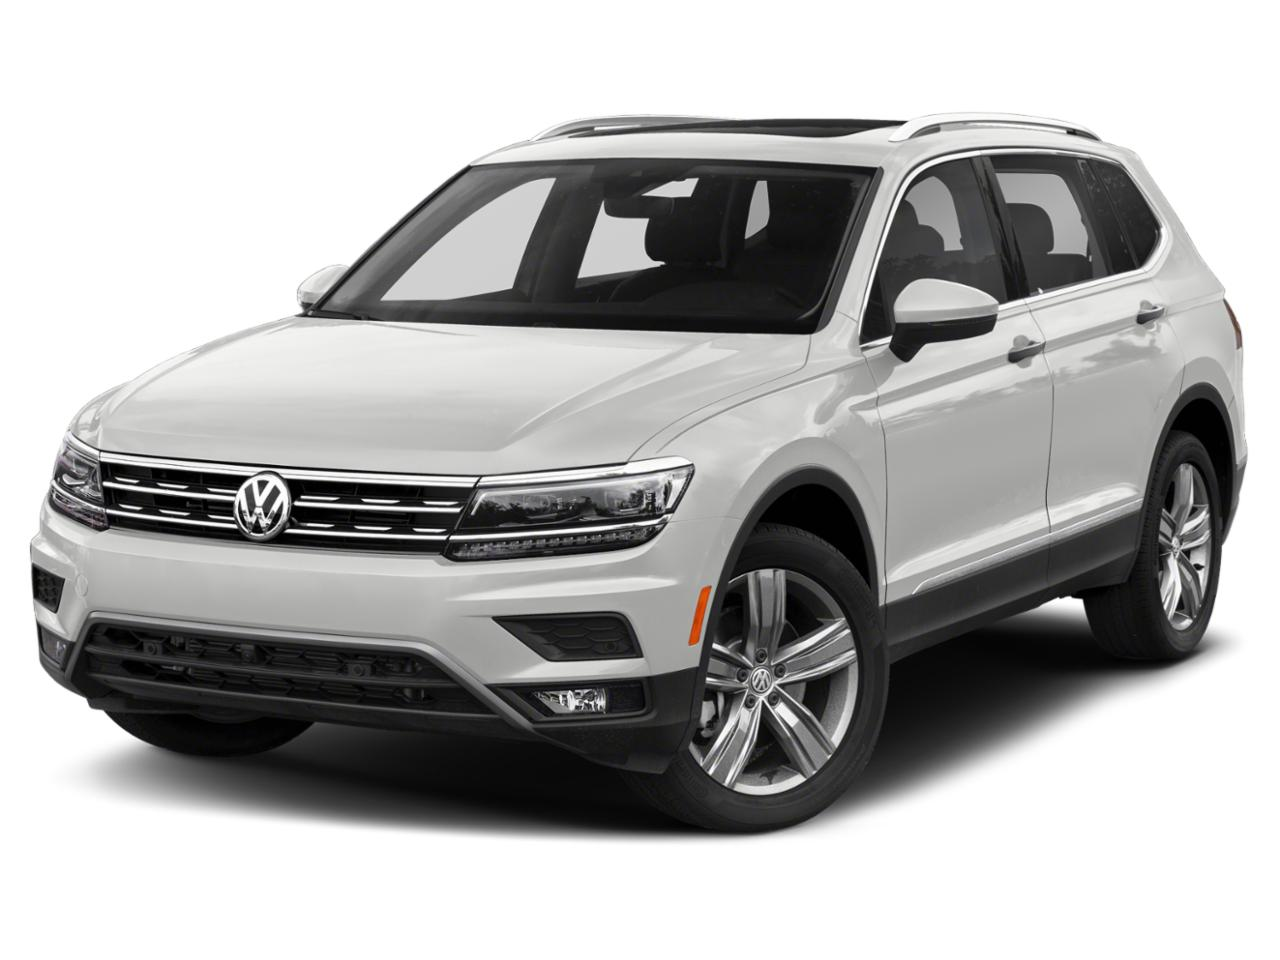 2020 Volkswagen Tiguan Vehicle Photo in San Antonio, TX 78257